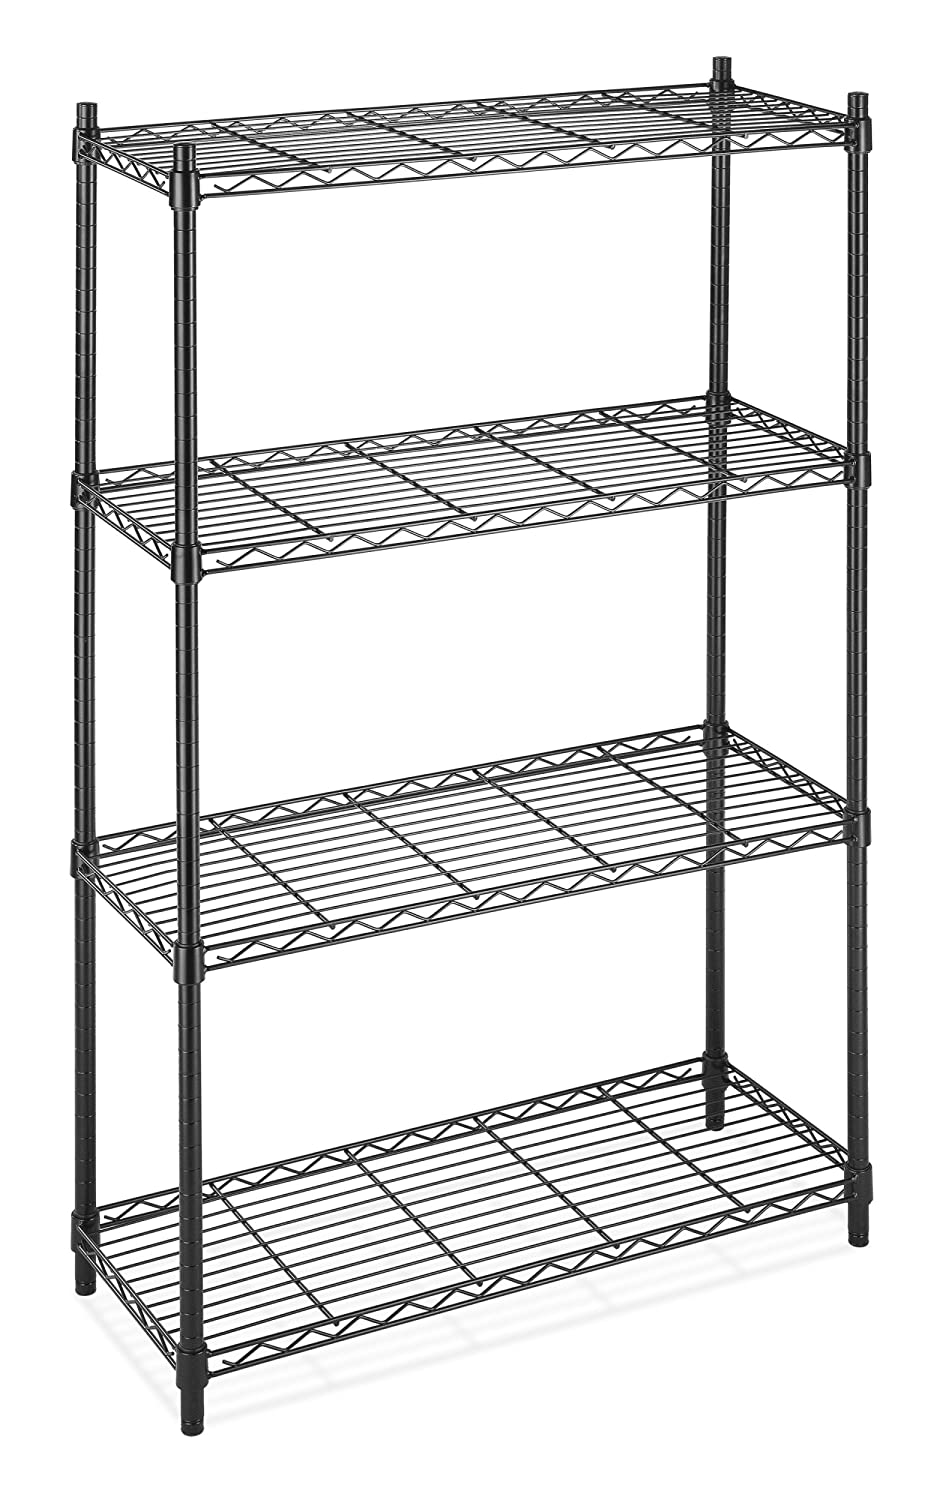 5 tier 4 shelves steel wire storage rack industrial. Black Bedroom Furniture Sets. Home Design Ideas